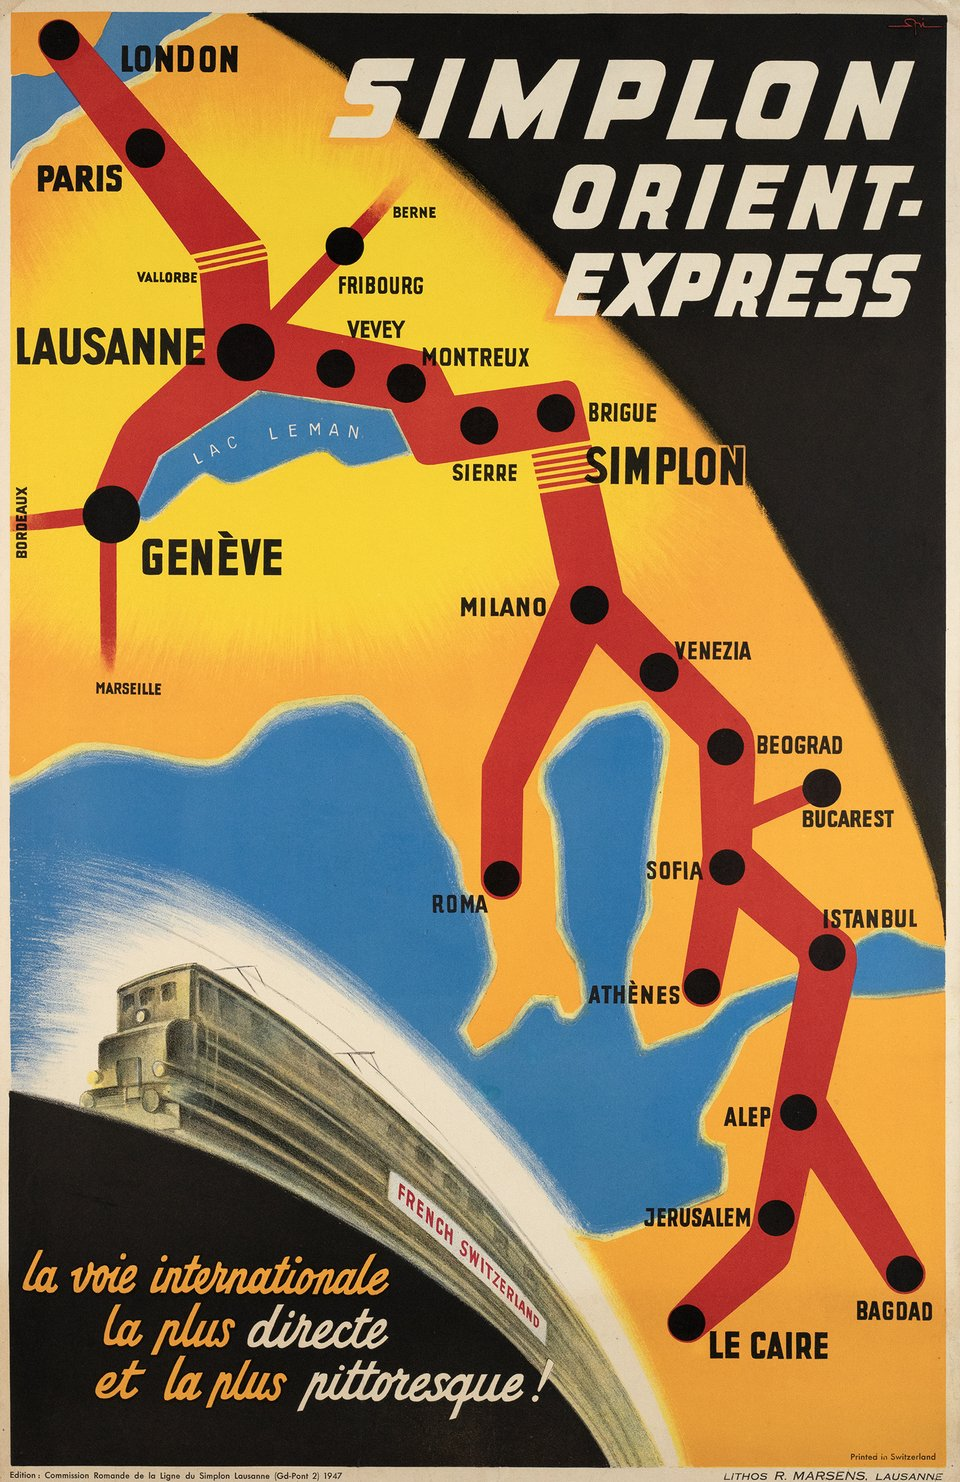 Simplon Orient-Express, la voie internationale la plus directe et la plus pittoresque – Affiche ancienne – Walther SPINNER – 1947